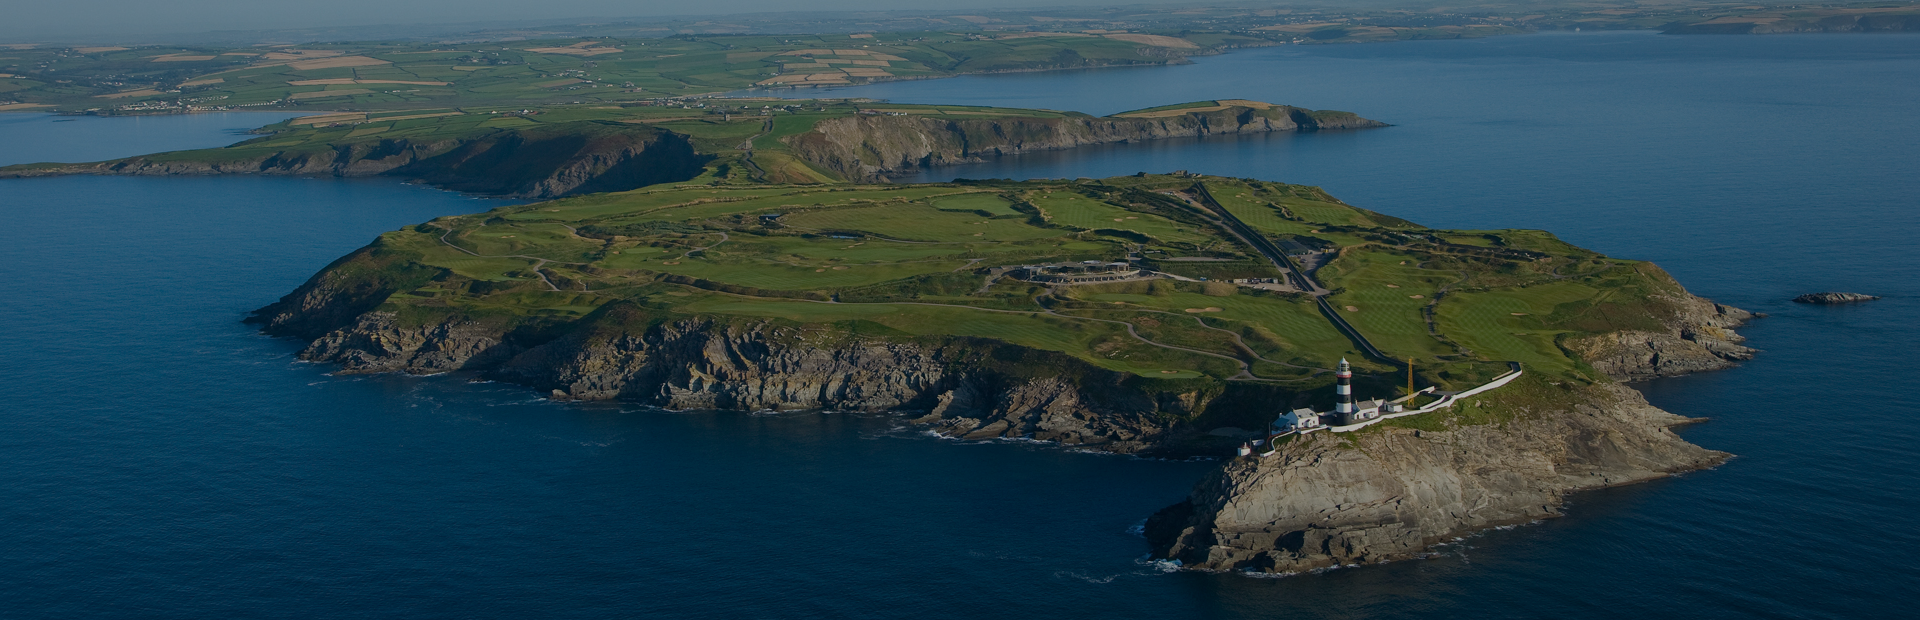 Ireland Golf Tours Golfing Vacations Ireland